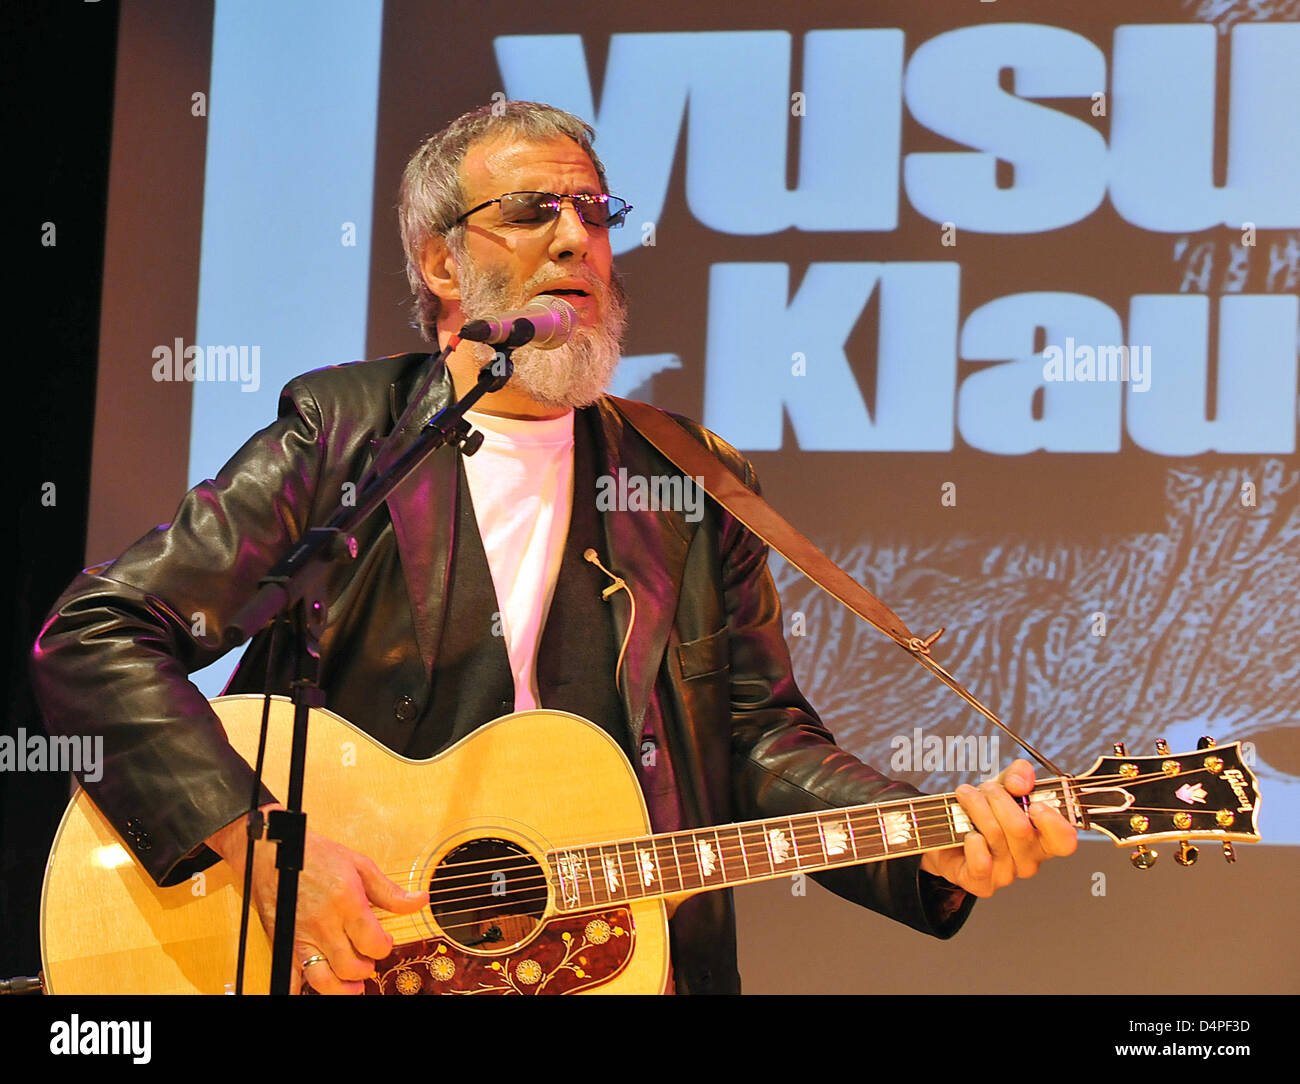 British musician Yusuf Islam, formerly known as Cat Stevens, performs at his bassist Klaus Voormann?s album release - Stock Image